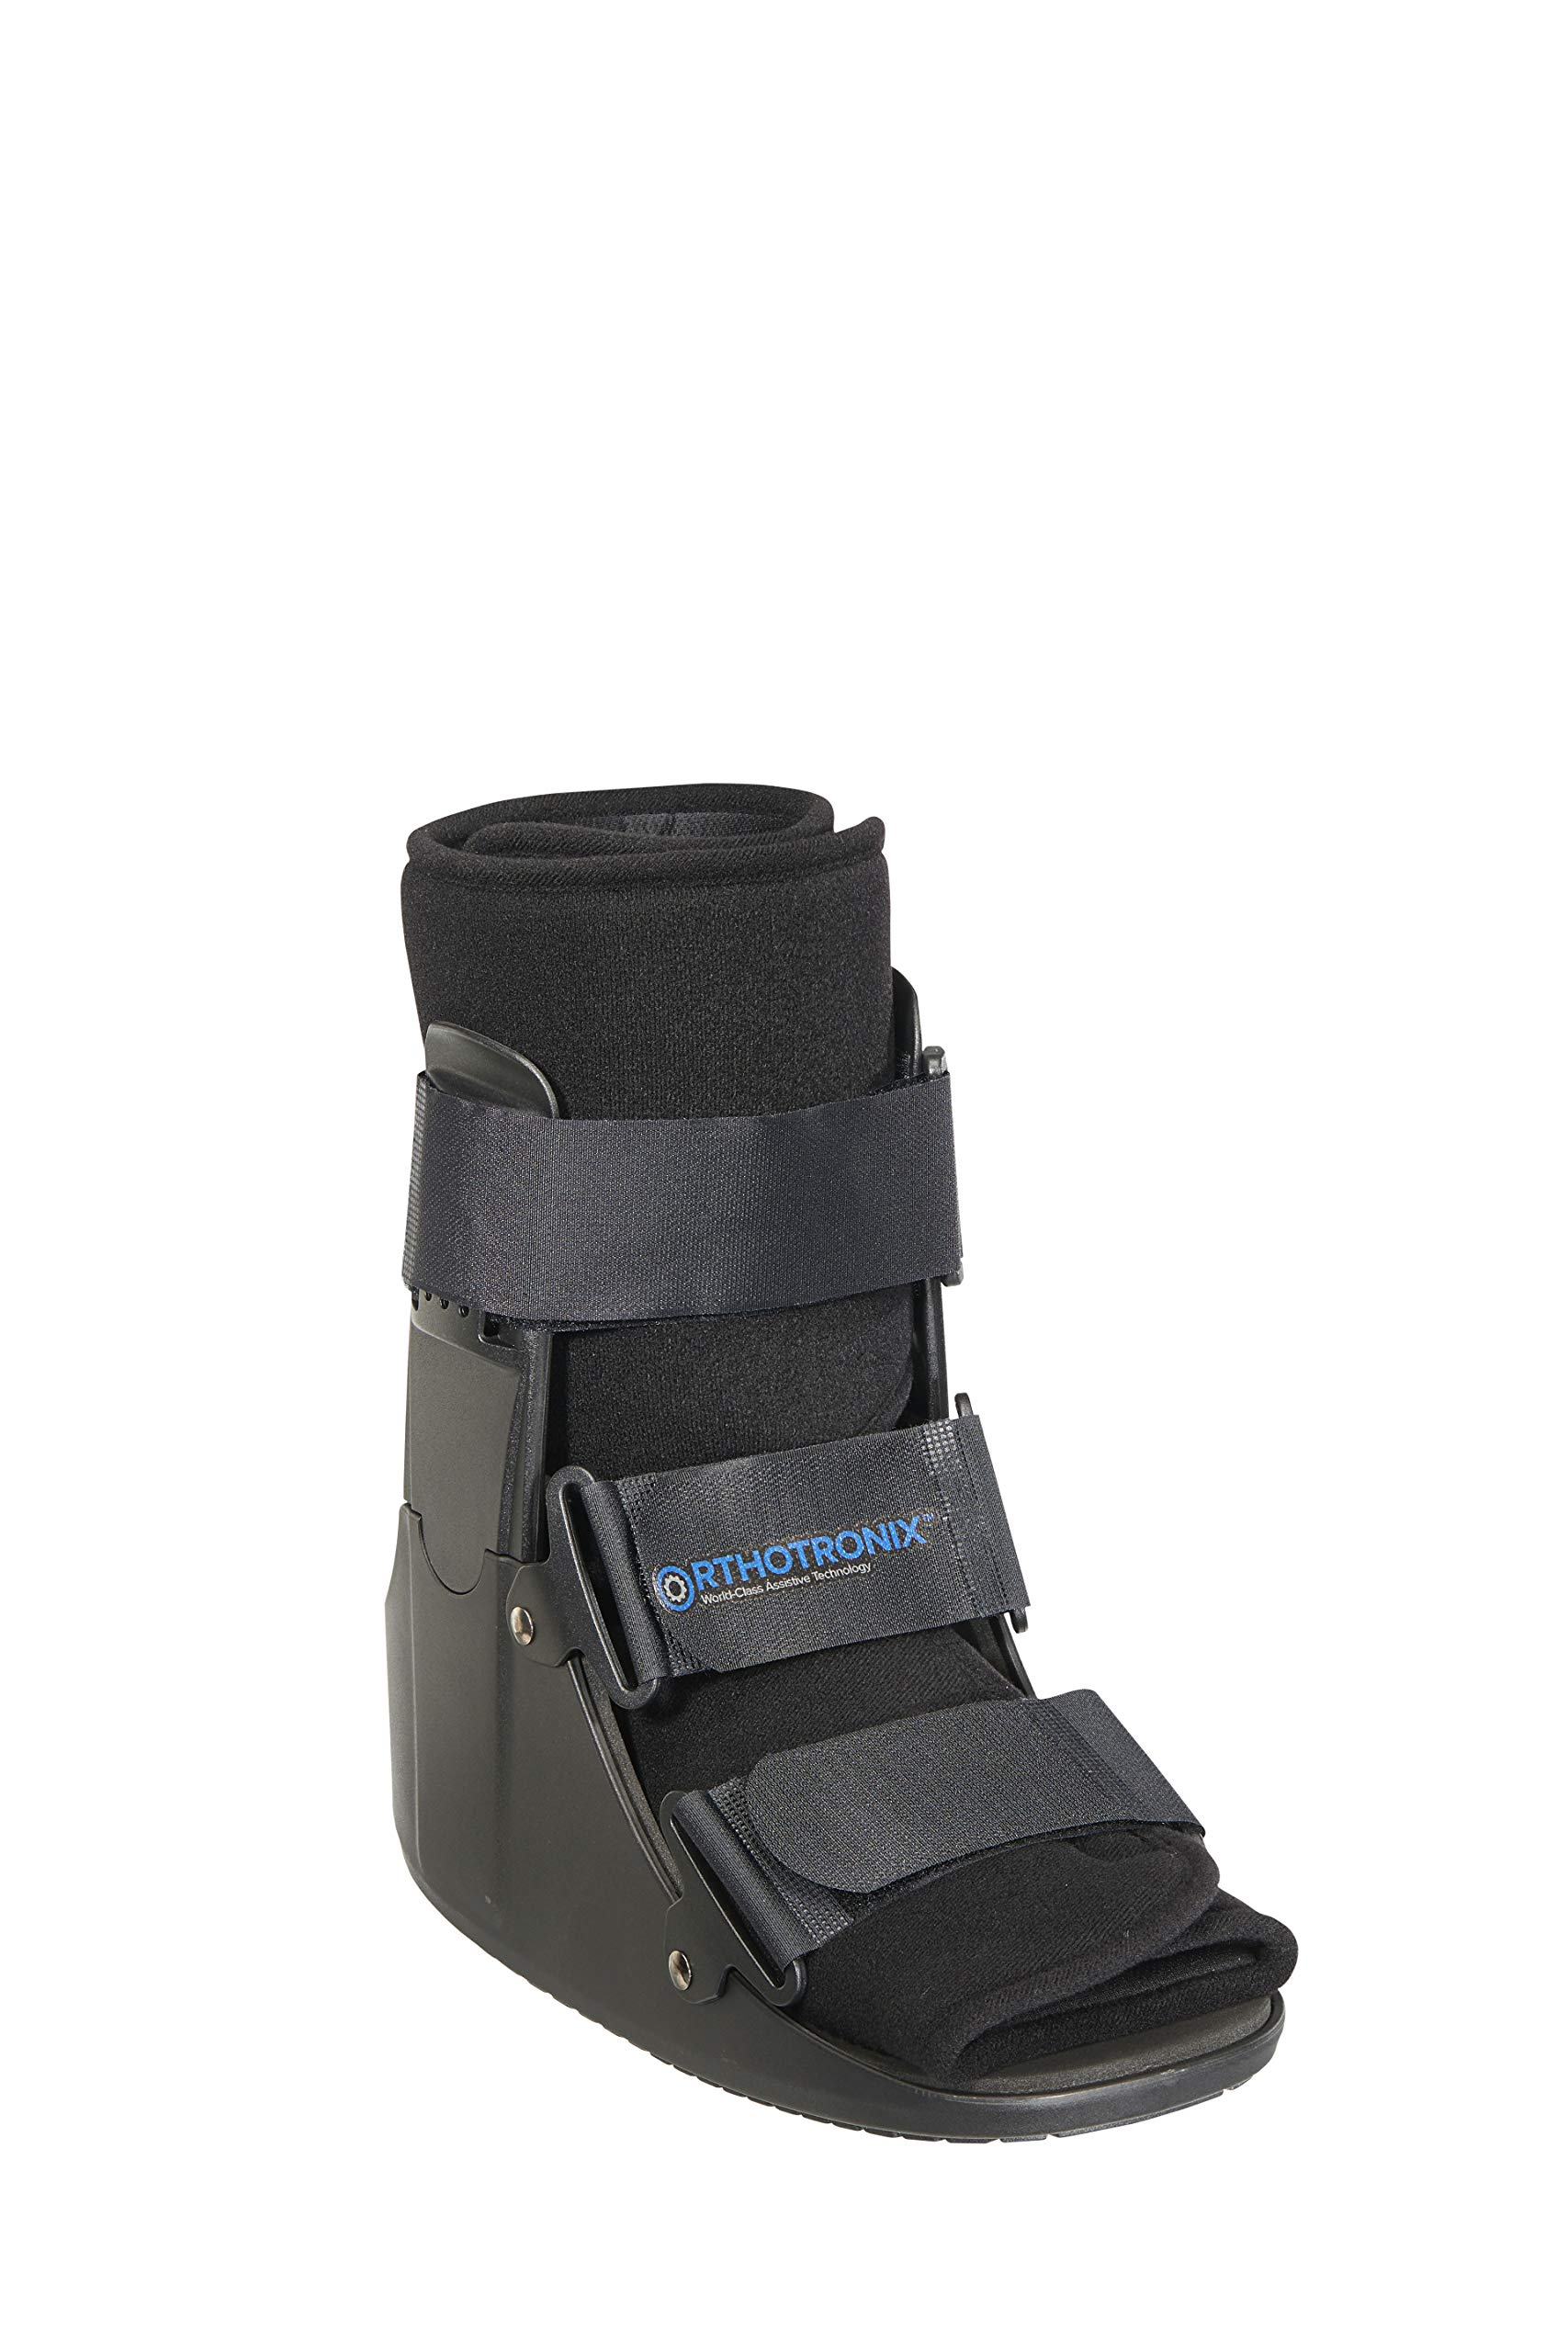 Orthotronix Short Cam Walker Boot (Medium) by Orthotronix